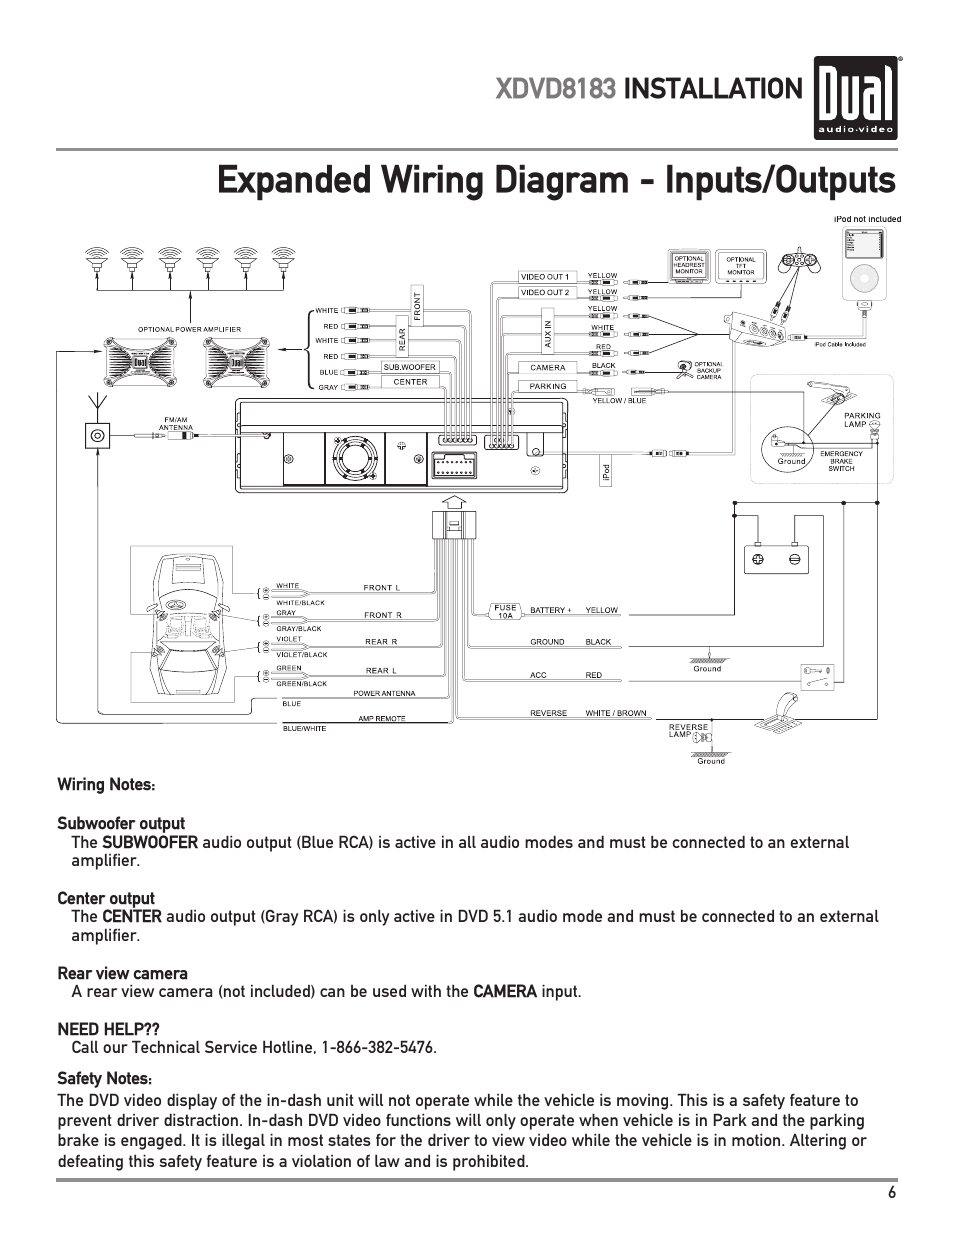 dual xdvd8183 page7 expanded wiring diagram inputs outputs, xdvd8183 installation dual xdvd8183 wiring harness at nearapp.co